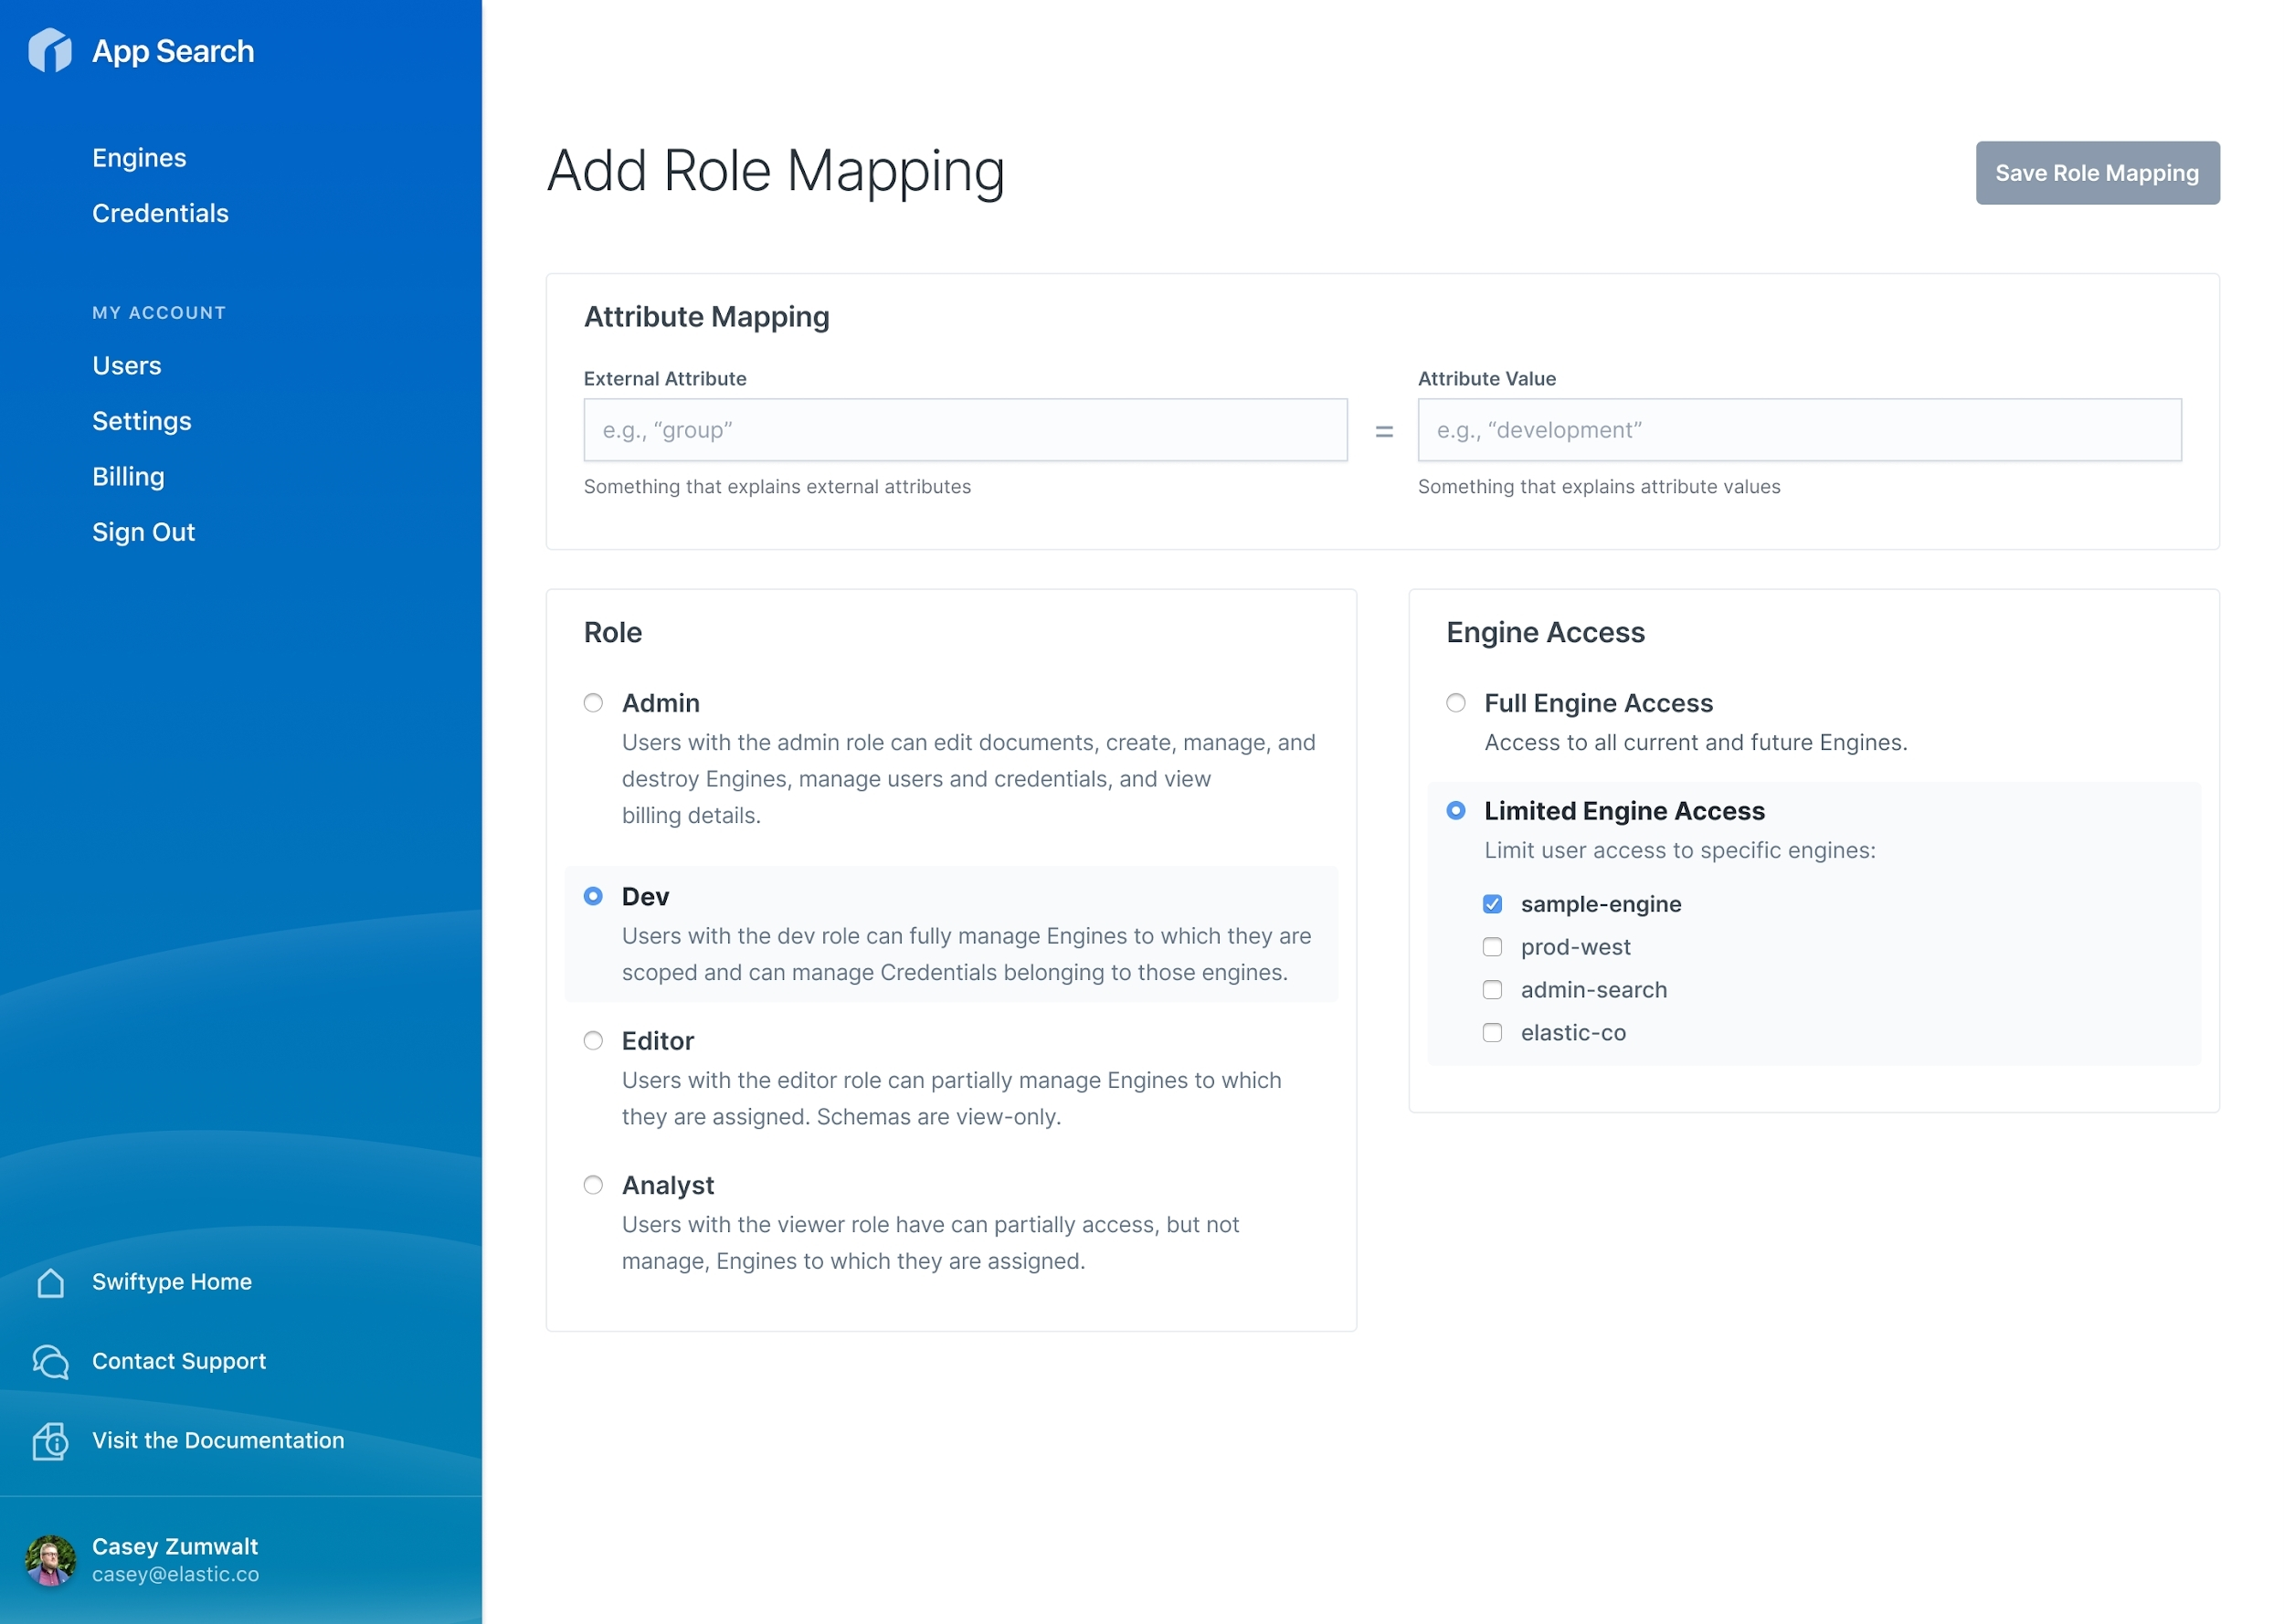 Elastic Makes App Search Available as a Self-Managed